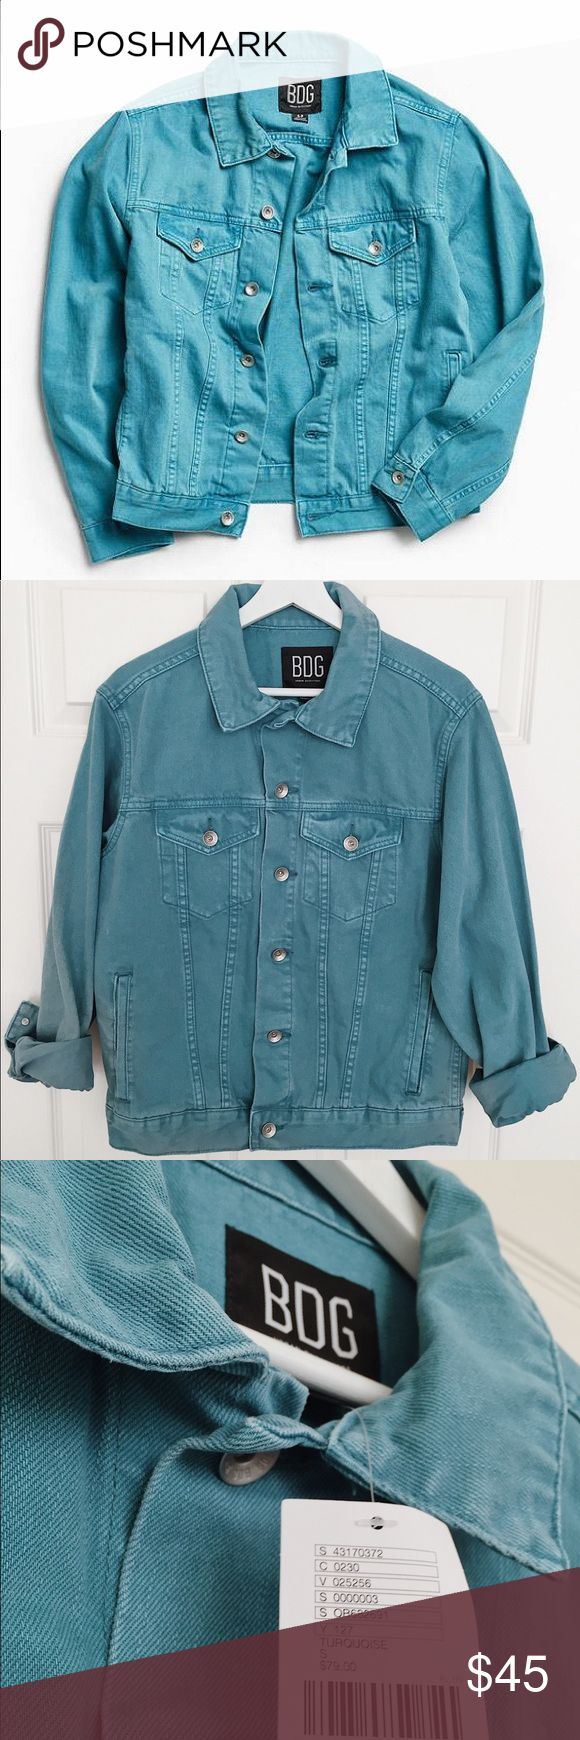 UrbanOutfitters BDG green/turquoise denim jacket Brand new with tag! Urban Outfitters BDG green/turquoise Core Denim Trucker Jacket Size: men's small —> fits like women's medium Perfect oversize look! Thick denim fabric  - bundle to save  #denimjacket #green #turquoise #urbanoutfitters #UO #BDG #menswear #oversize Urban Outfitters Jackets & Coats Jean Jackets